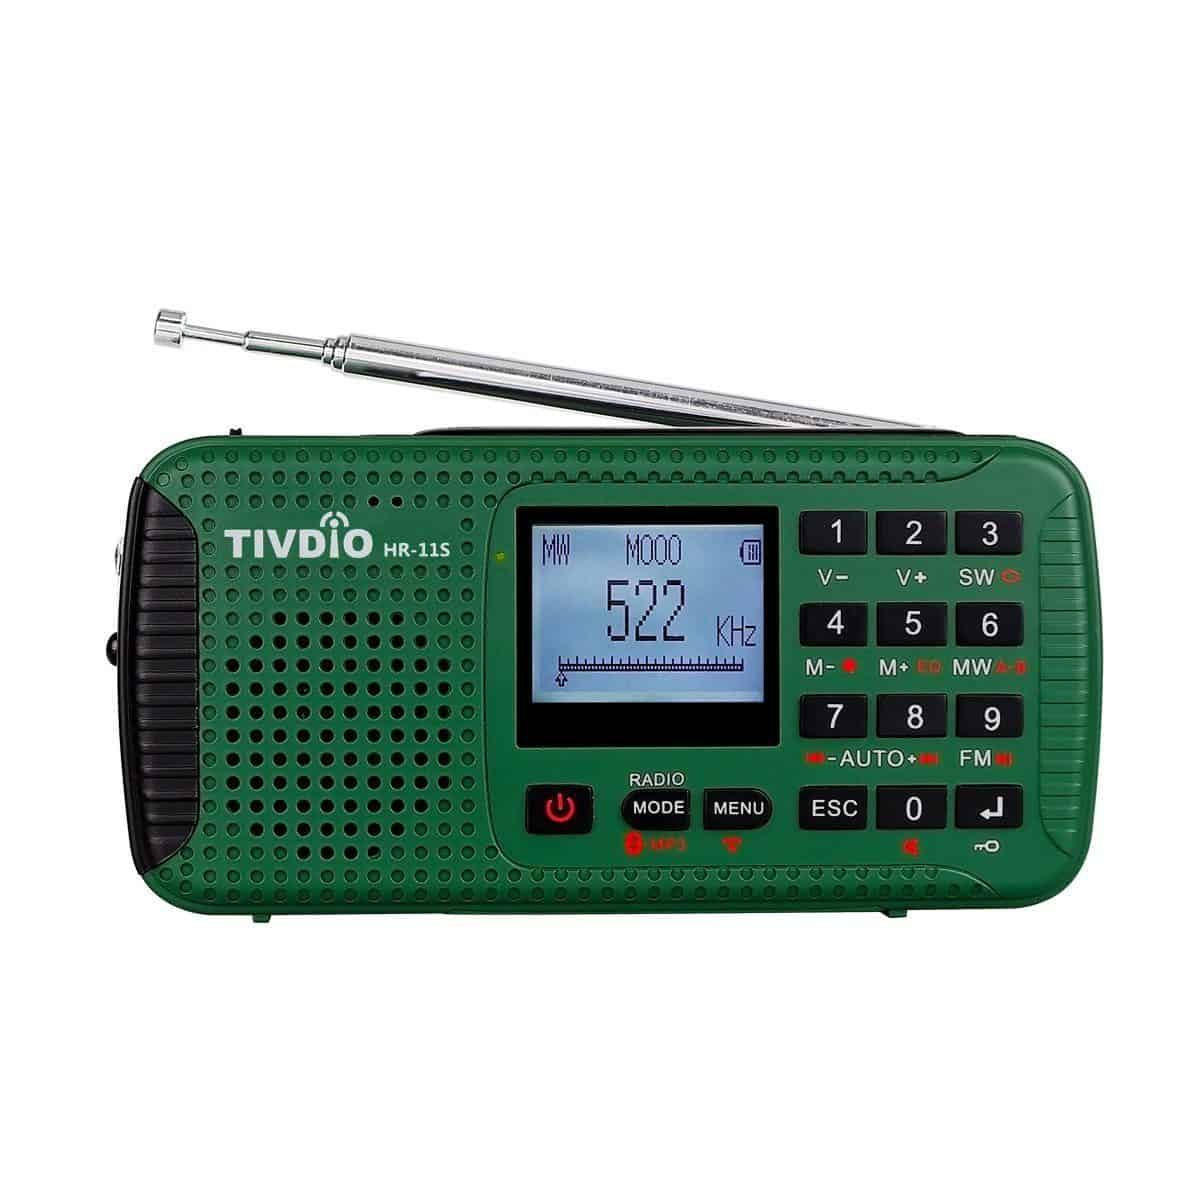 Tivdio HR-11S Portable Radio Rechargeable Wind Up Radio